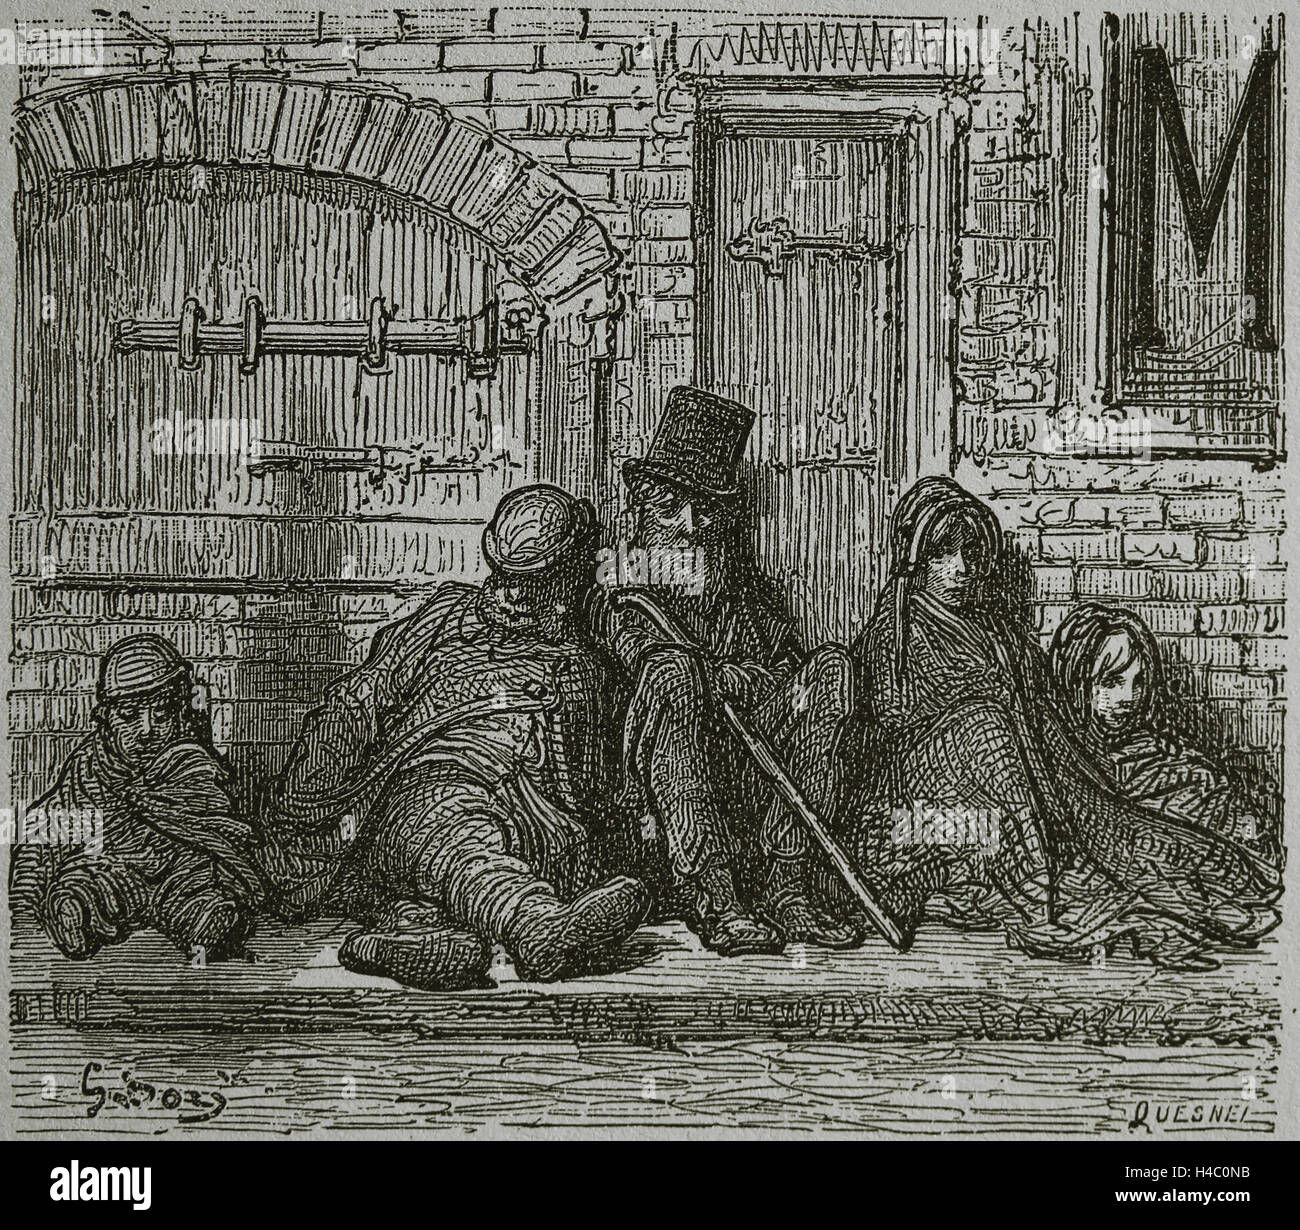 United Kingdom. London. Victorian era. Humble Industries. Roofless. Engraving by Gustave Dore, 19th century. - Stock Image